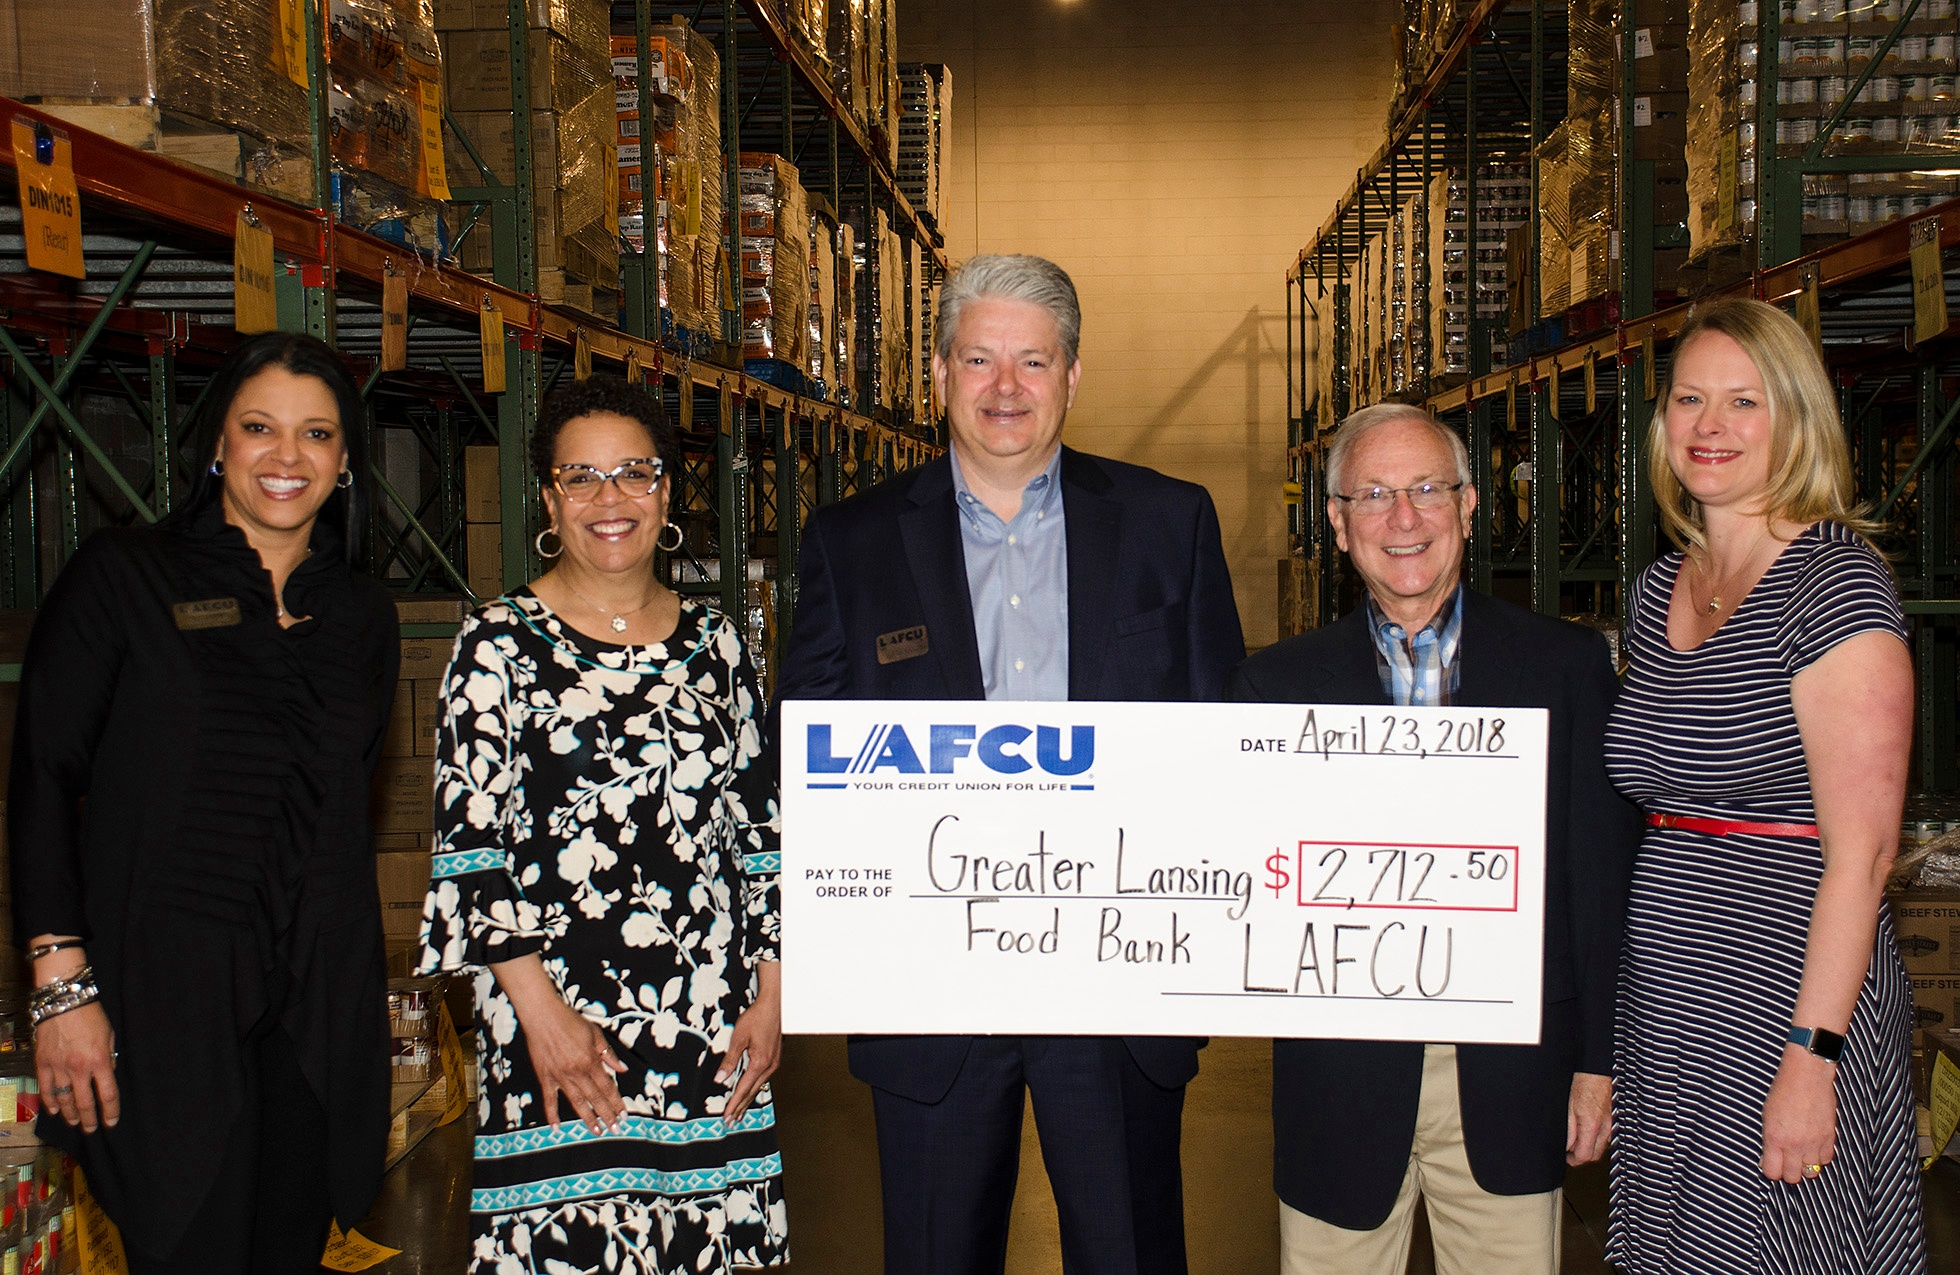 Present at the check presentation to Greater Lansing Food Bank are, from left, LAFCU's Shelley Davis Boyd, corporate marketing strategist, Kelli Ellsworth Etchison, chief marketing officer, and Patrick Spyke, CEO; Joe Wald, GLFB executive director; and Melissa Nay, WKAR TV/Radio director of corporate development.